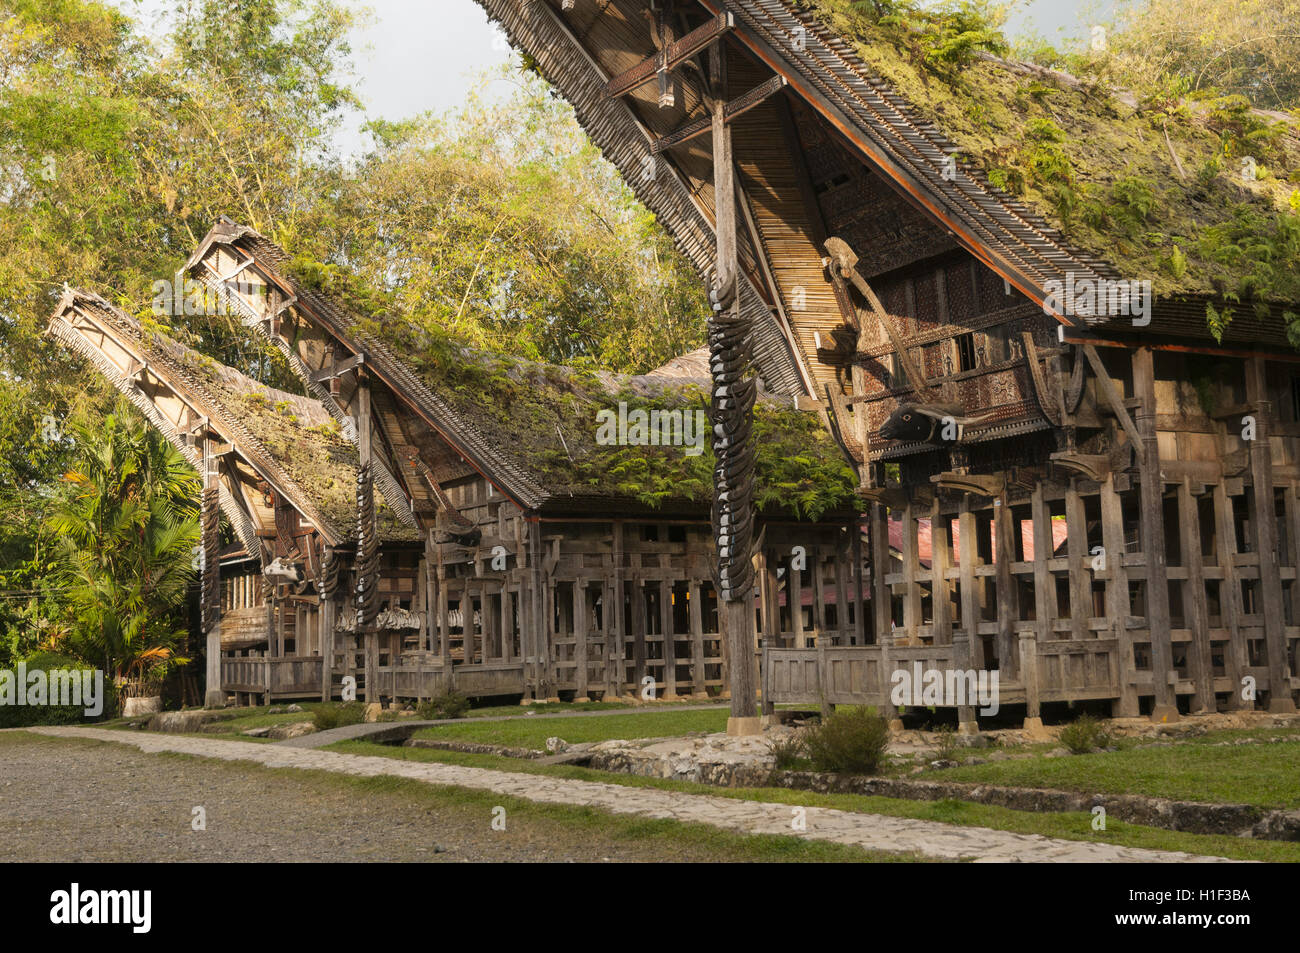 Indonesia, Sulawesi, Tana Toraja, Ke'te Kesu, village with Torajan houses (tongkonan) - Stock Image